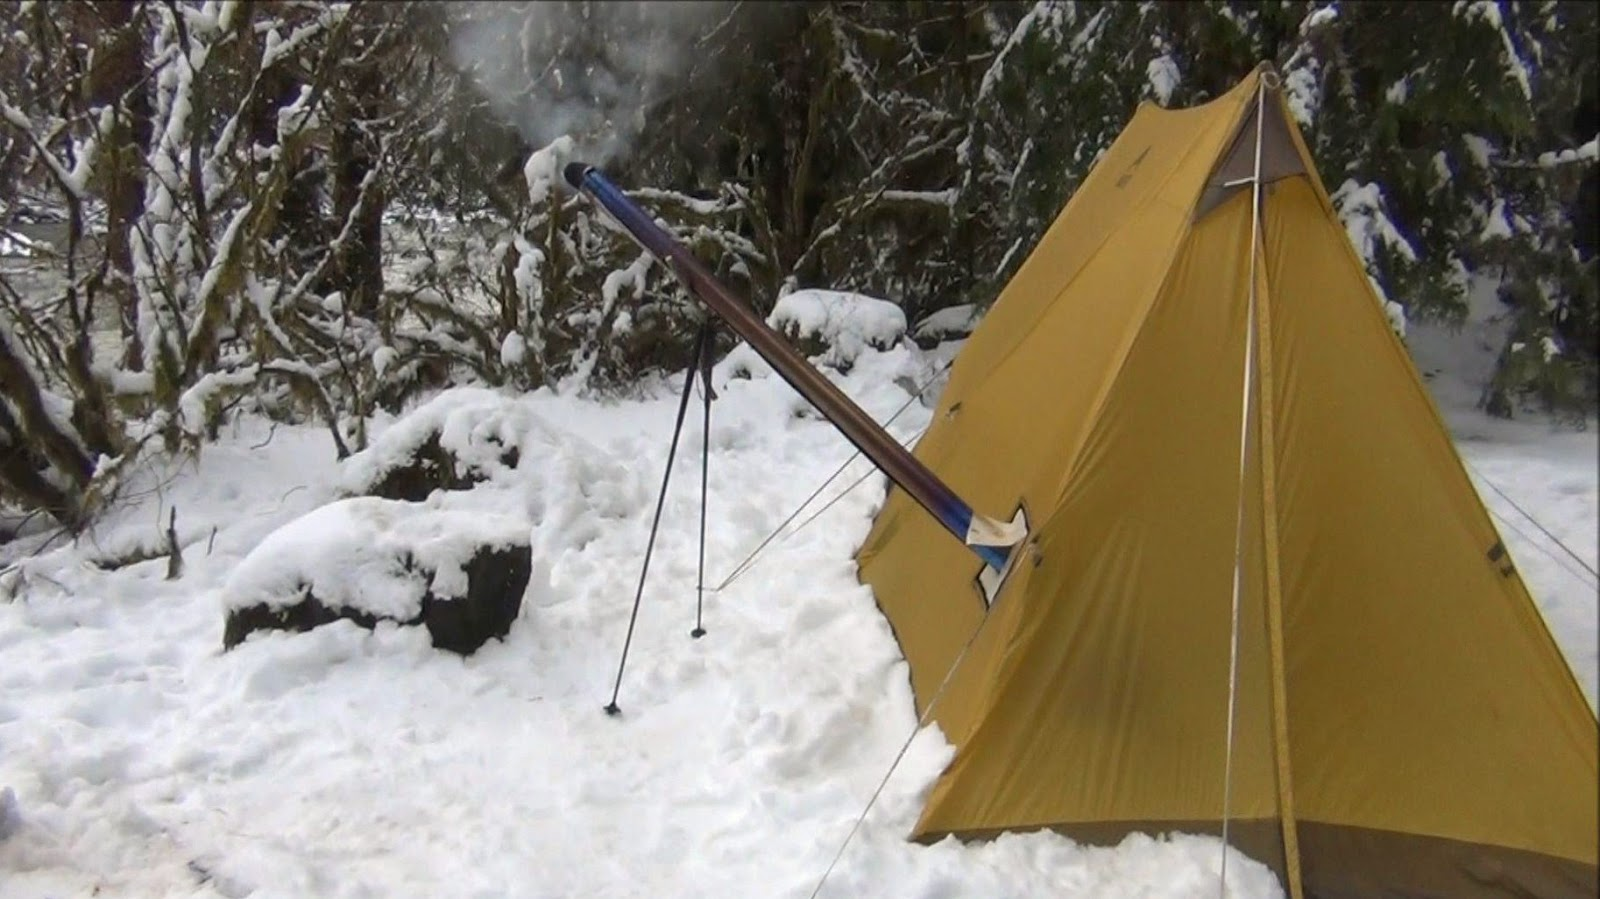 Hot Tenting with Wood Stove Winter C&ing Sure Is Fun! & Wawhiker Backpacking: Hot Tenting with Wood Stove Winter Camping ...